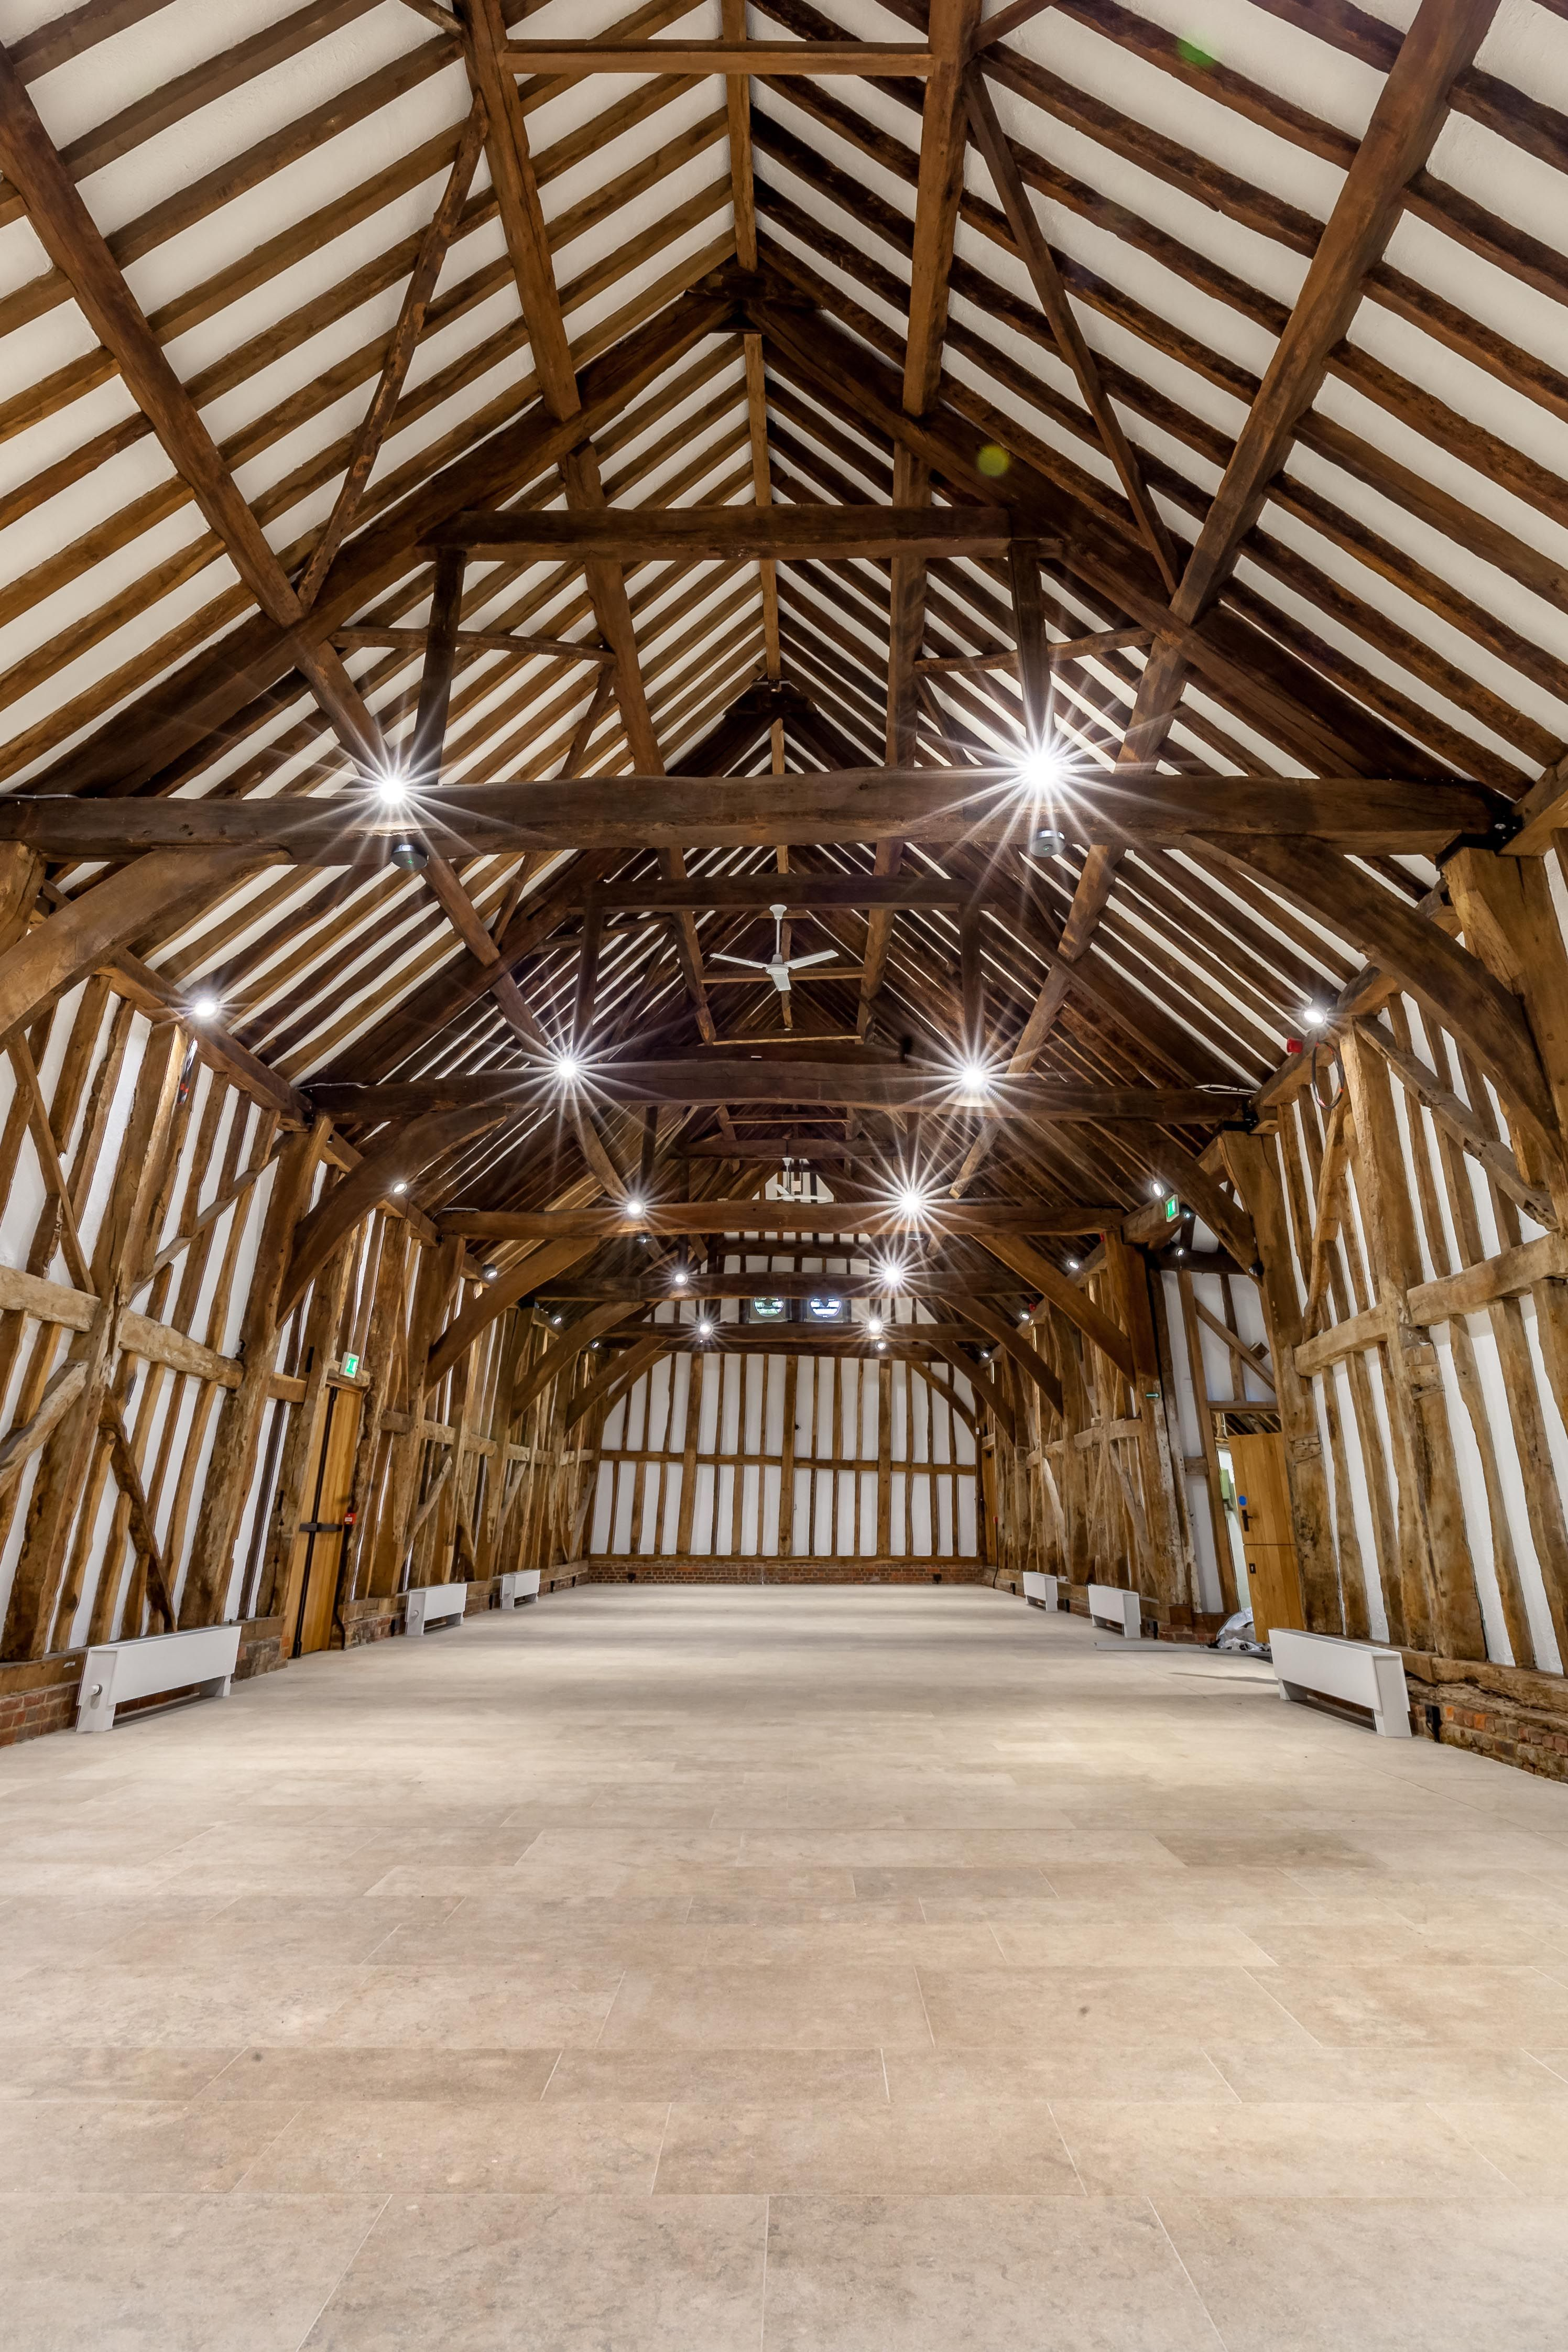 A Beautiful Wedding And Event Venue At Headstone Manor The Barn Features Natural Stone Floor Tiles From Solar Range